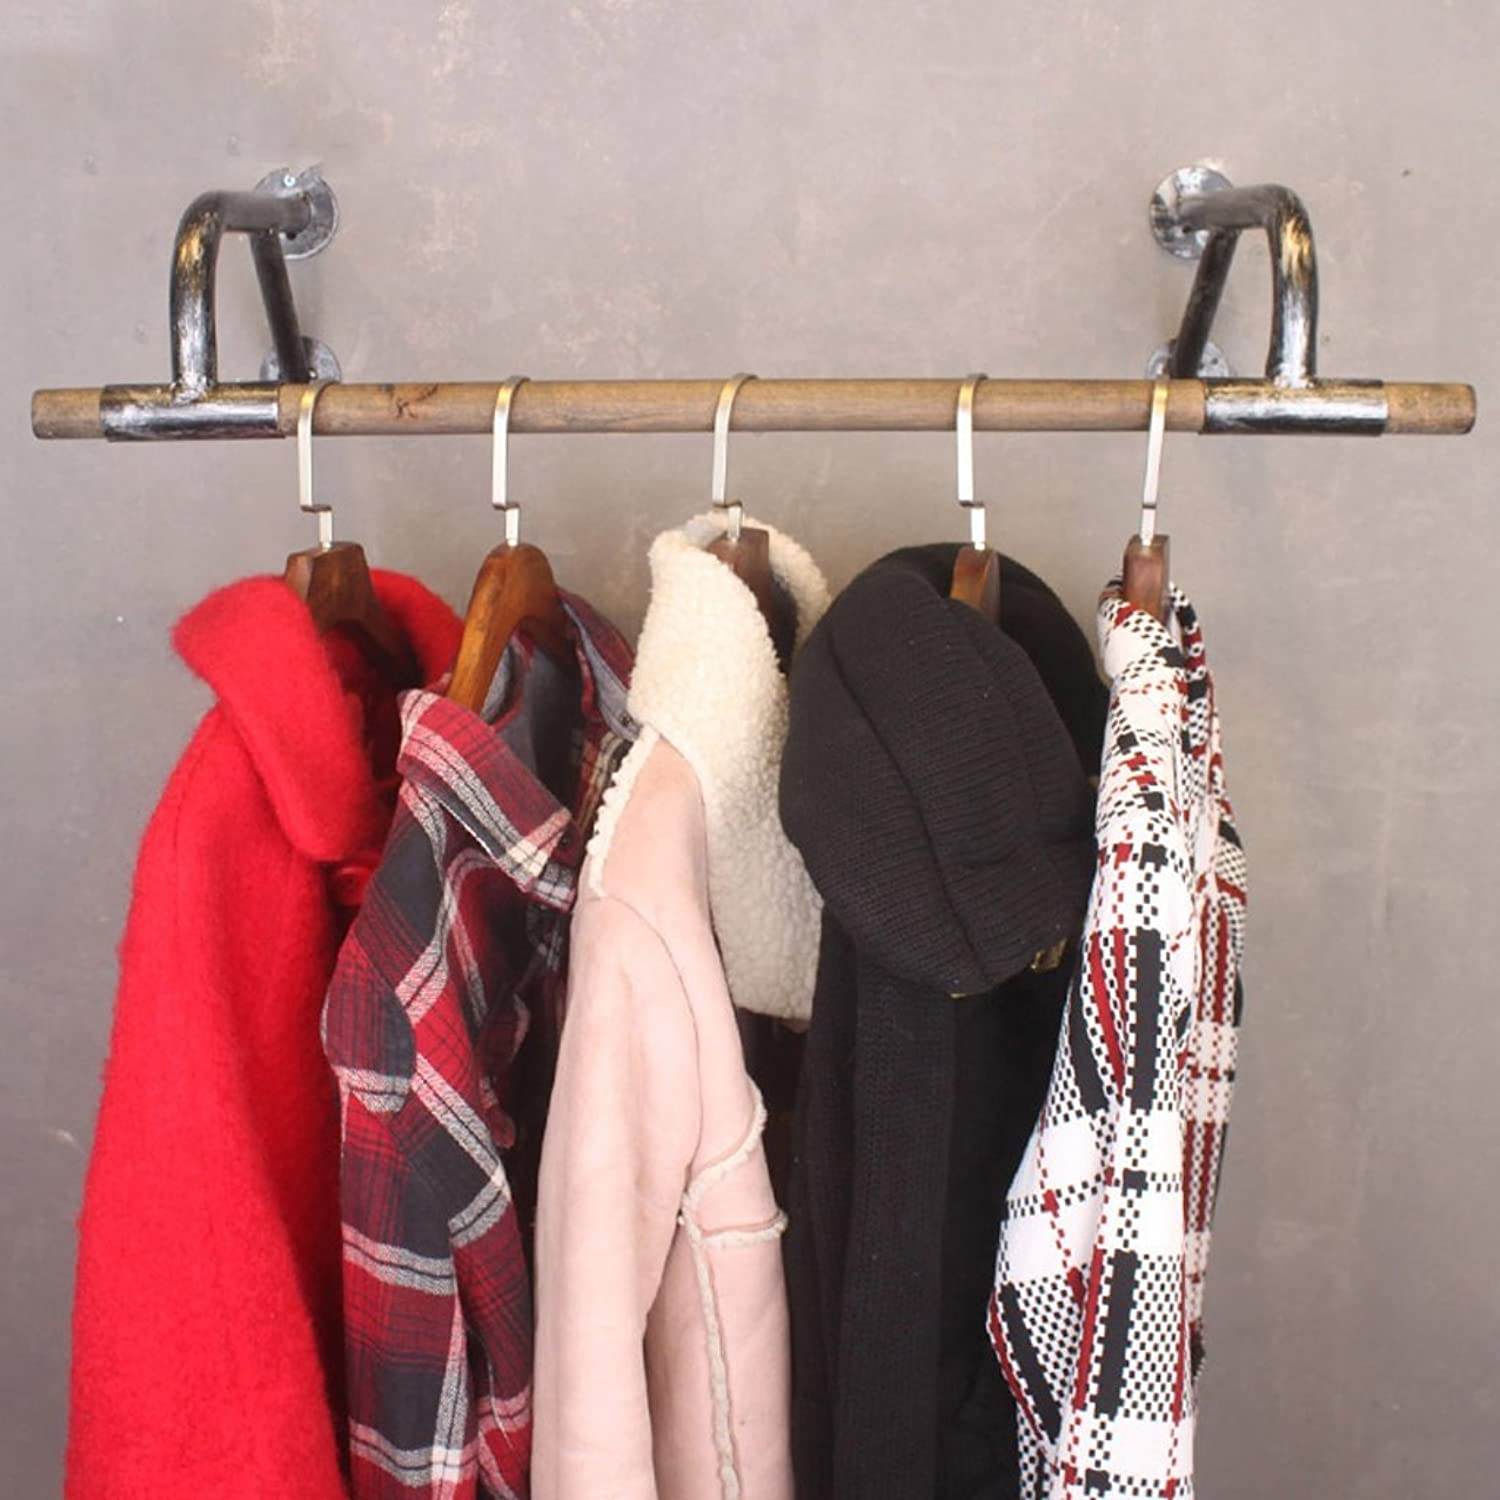 Solid Wood Wrought Iron Coat Rack Retro Combination Clothes Rack Hook Wall Hanging Frame Suitable for Living Room Bedroom Study is Durable Not Rusty Removable Ancient